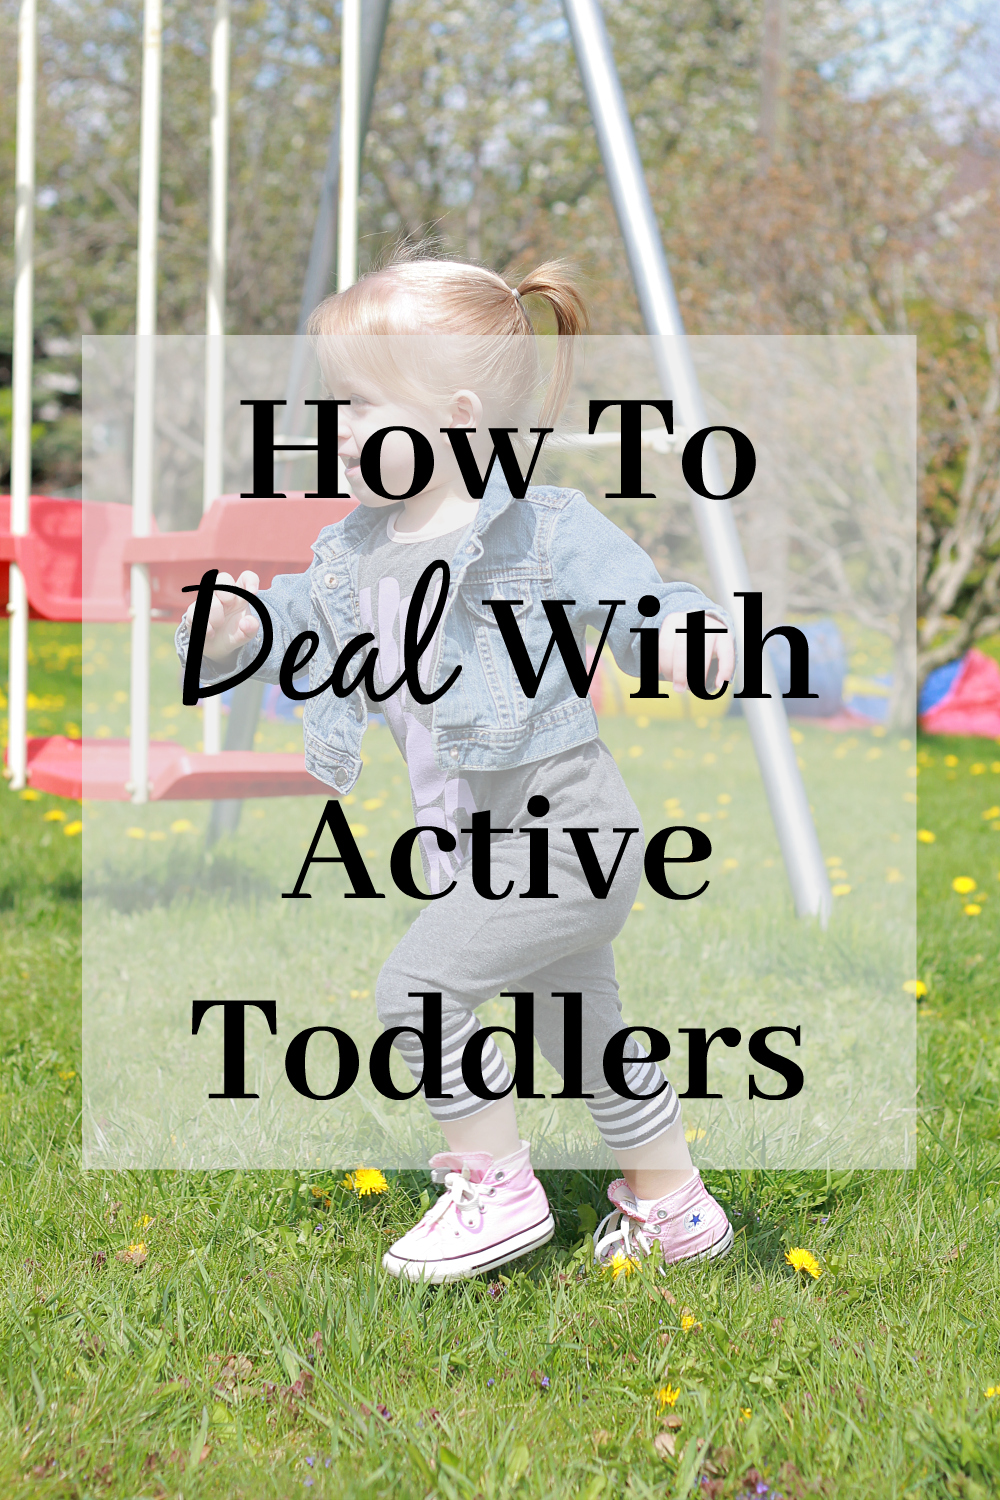 How To Deal With Active Toddlers